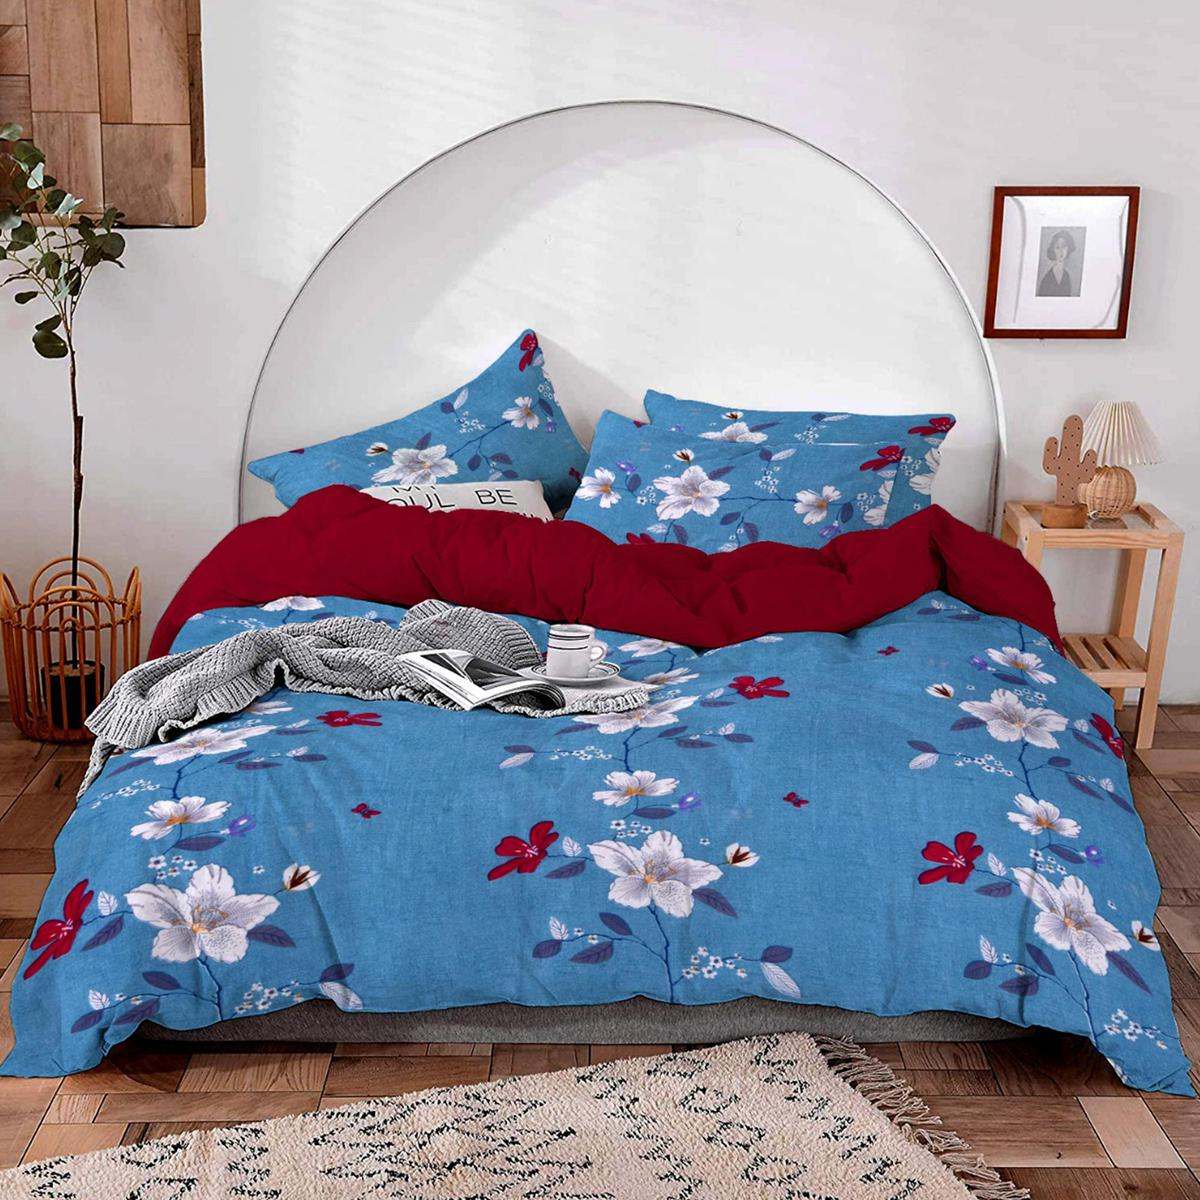 Sapphire Blue Color Printed Poly Cotton Bedsheet Comes With 2 Pillow Cover